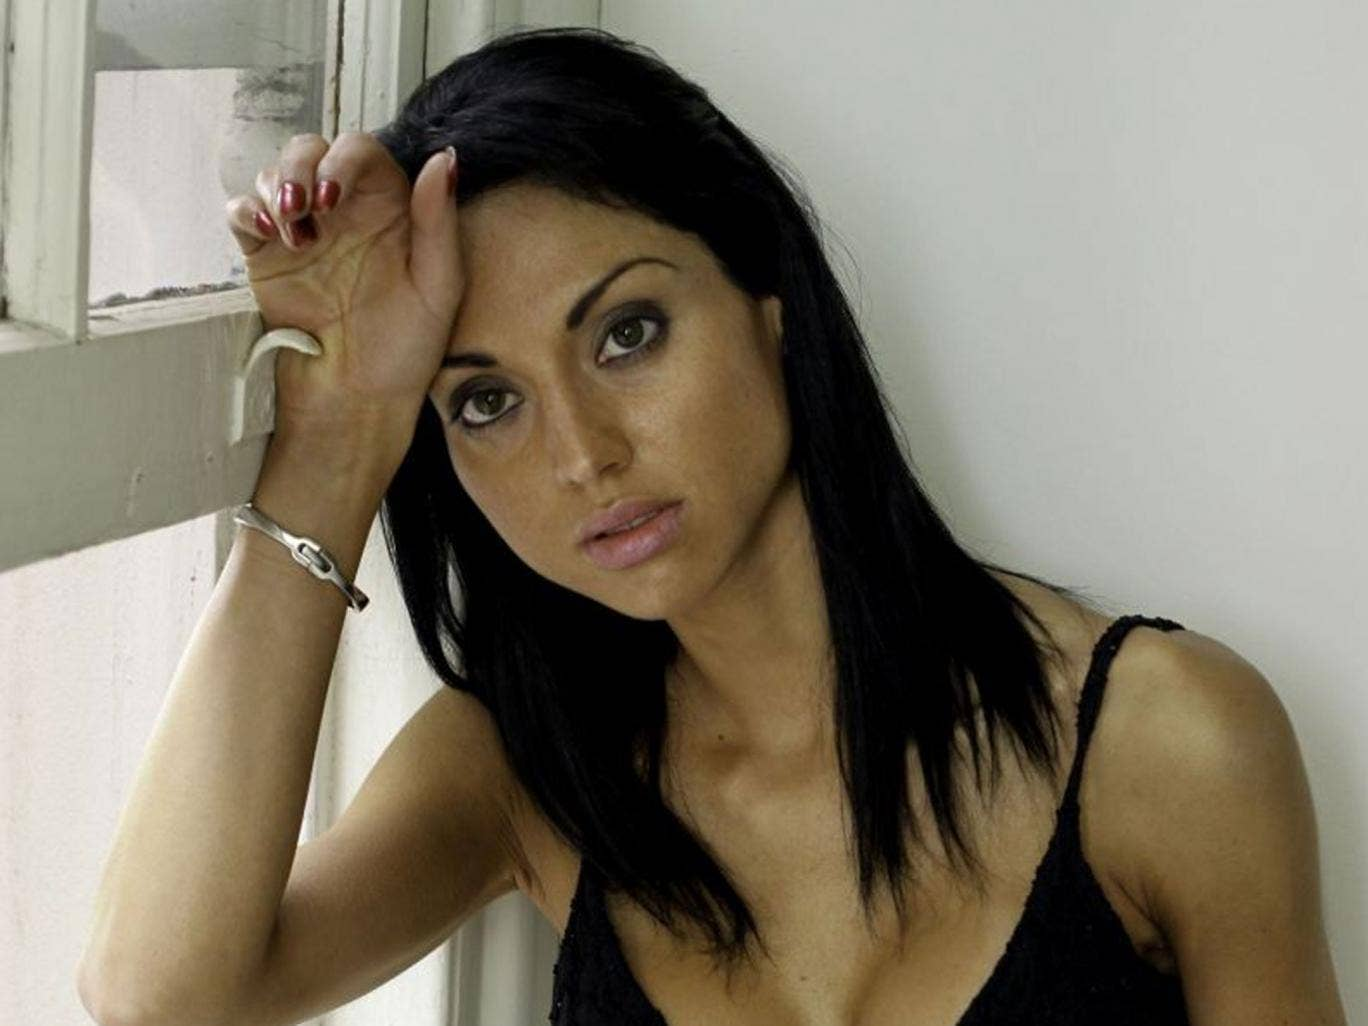 Lisa Harnum's death is being investigated